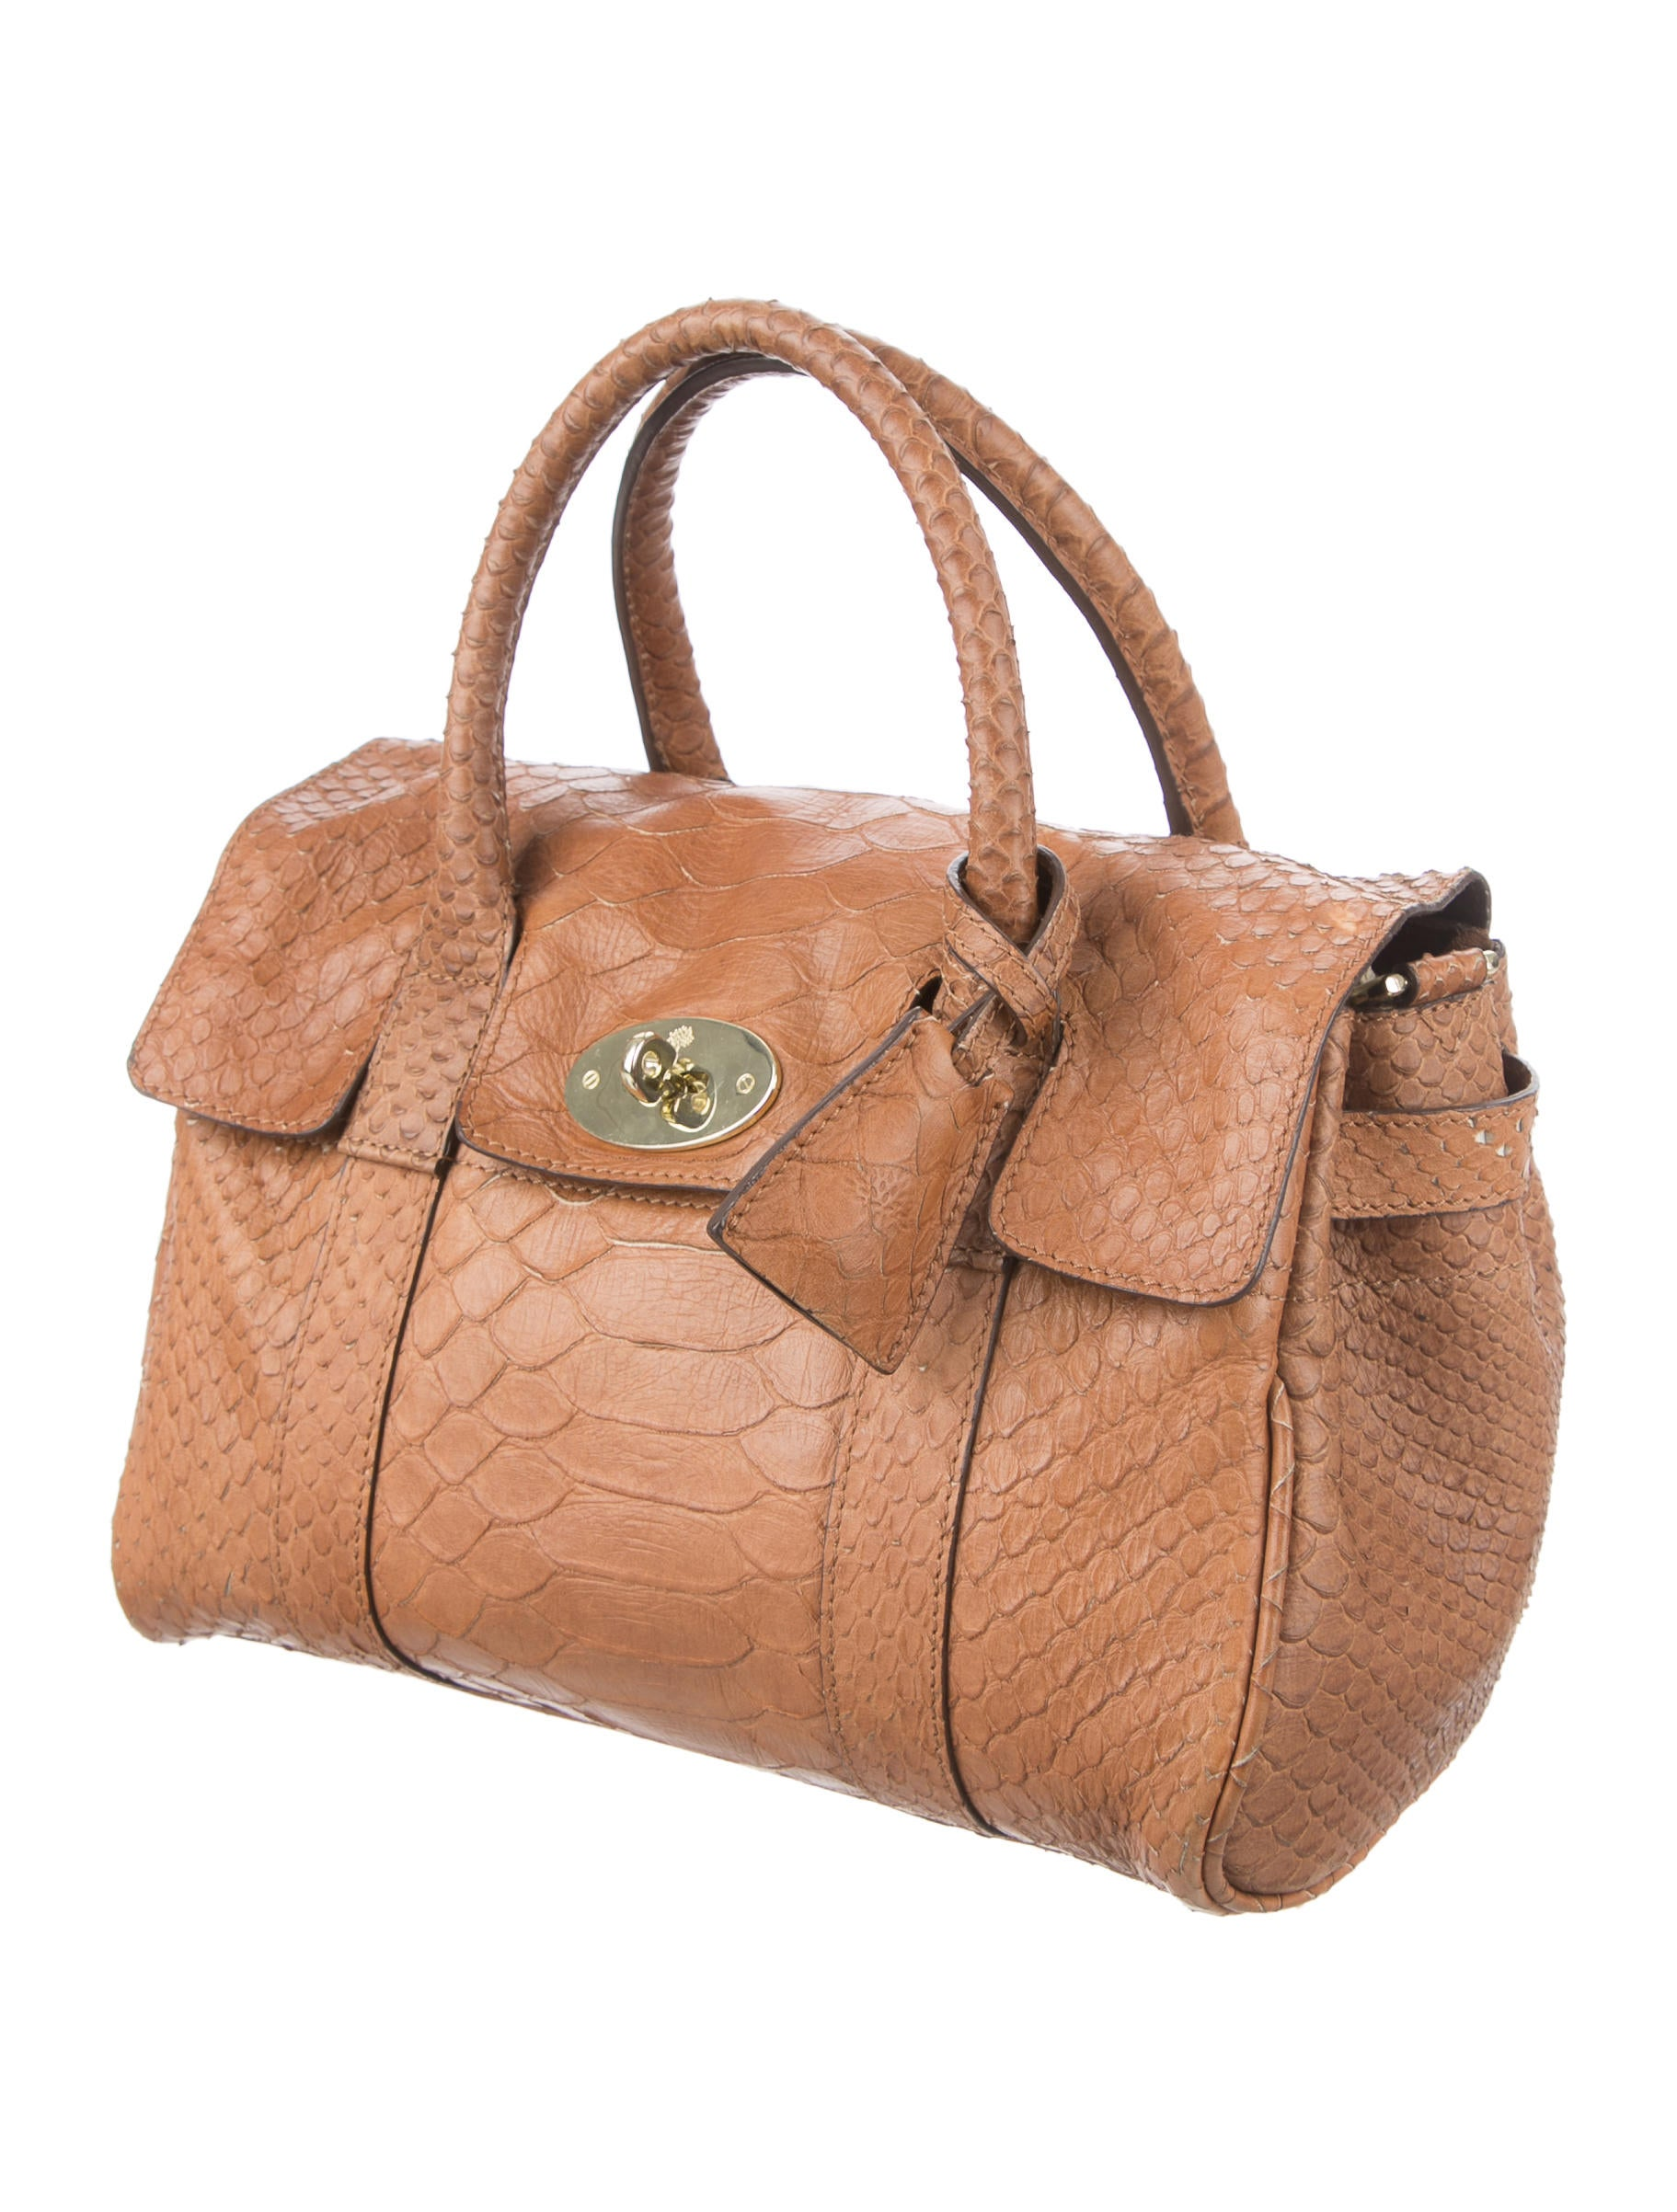 Mulberry mini python bayswater bag handbags mul22203 for The bayswater